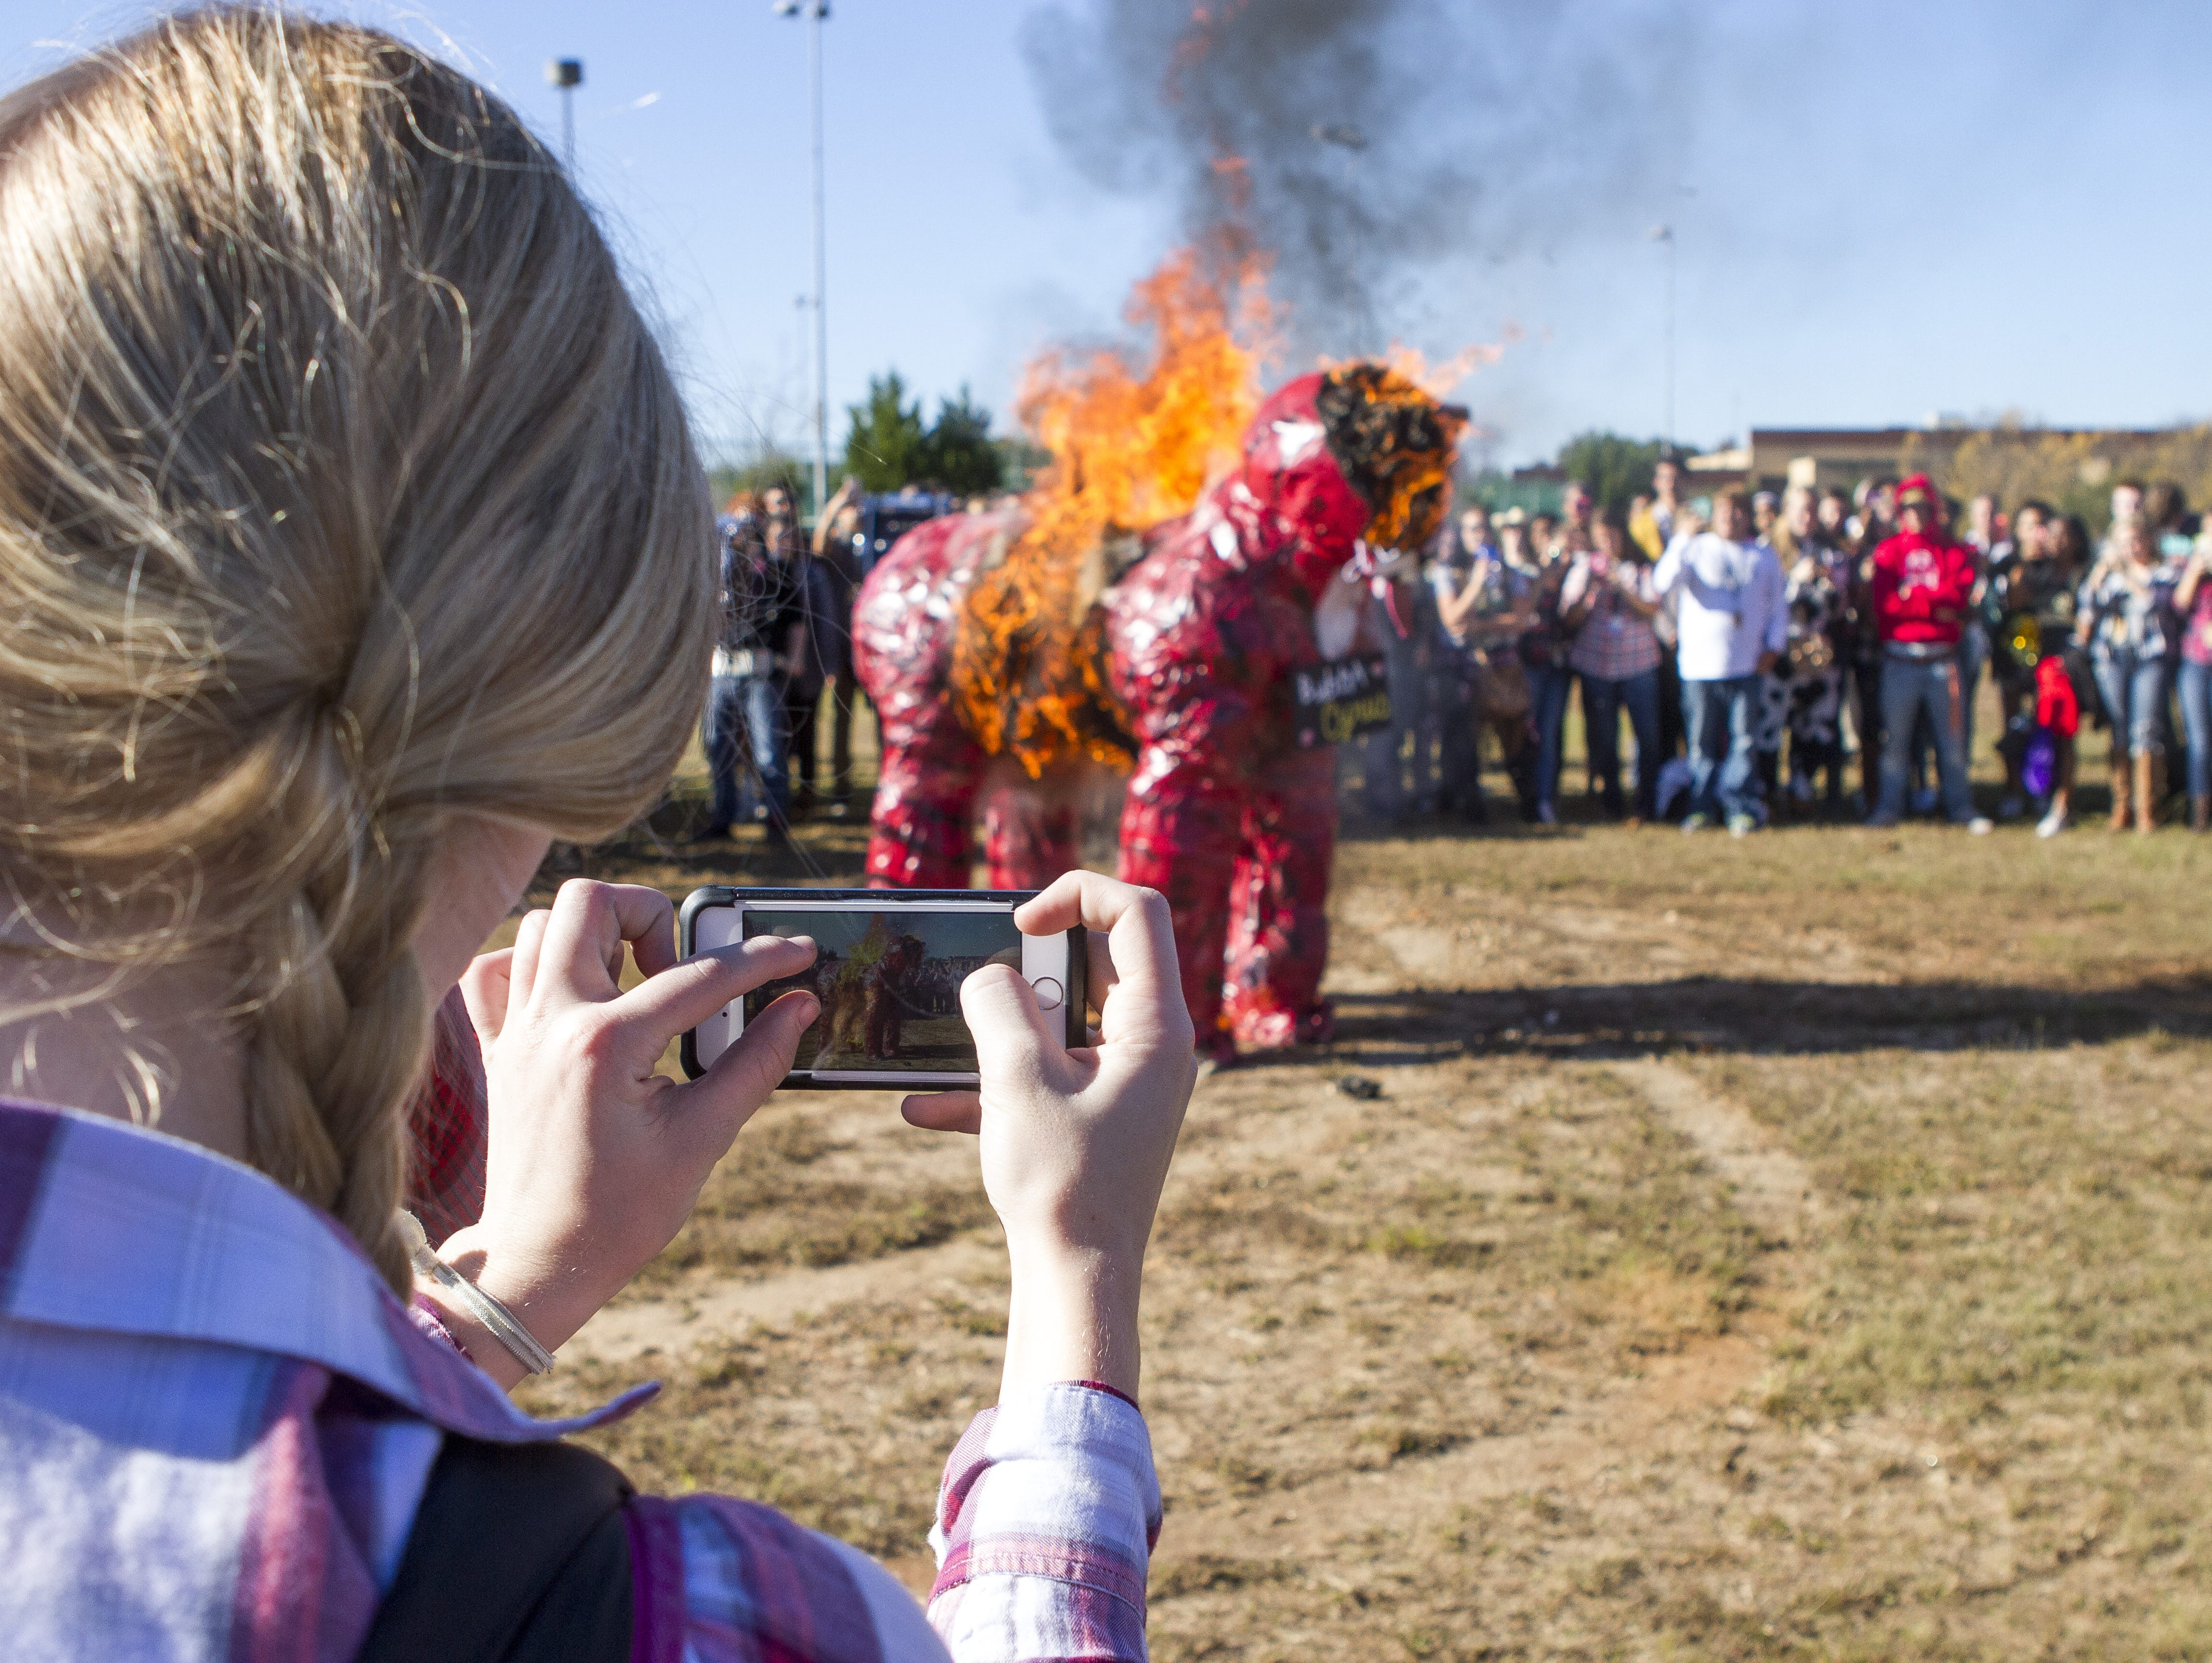 Greer High School freshman Caroline Littlefield zooms in on the action as Bubba Cyrus, the Blue Ridge High School mascot, burns. The Yellowjackets burn a tiger every year at the pep rally leading up to the rivalry game.